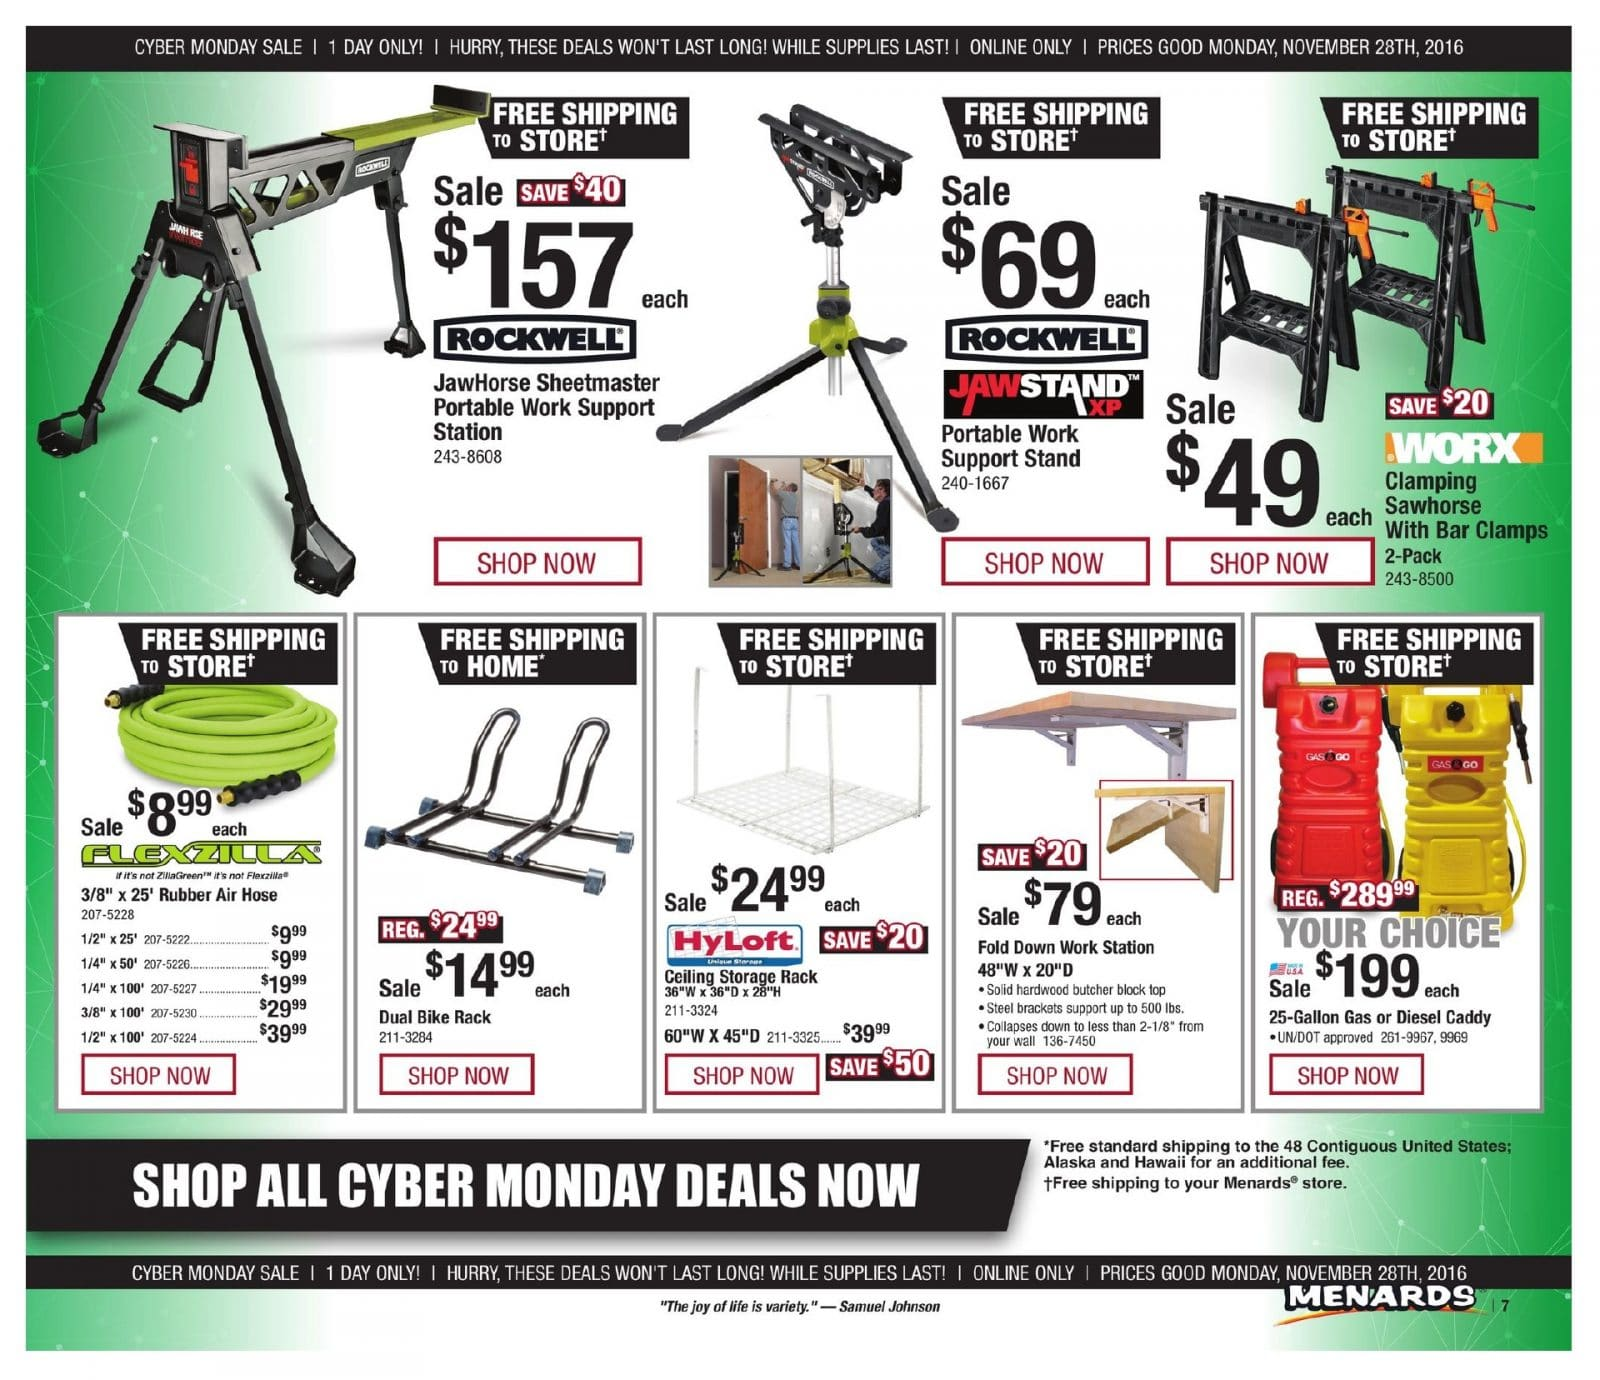 View your Online Only Menards online. Find sales, special offers, coupons and more. Valid from Nov 26 to Dec